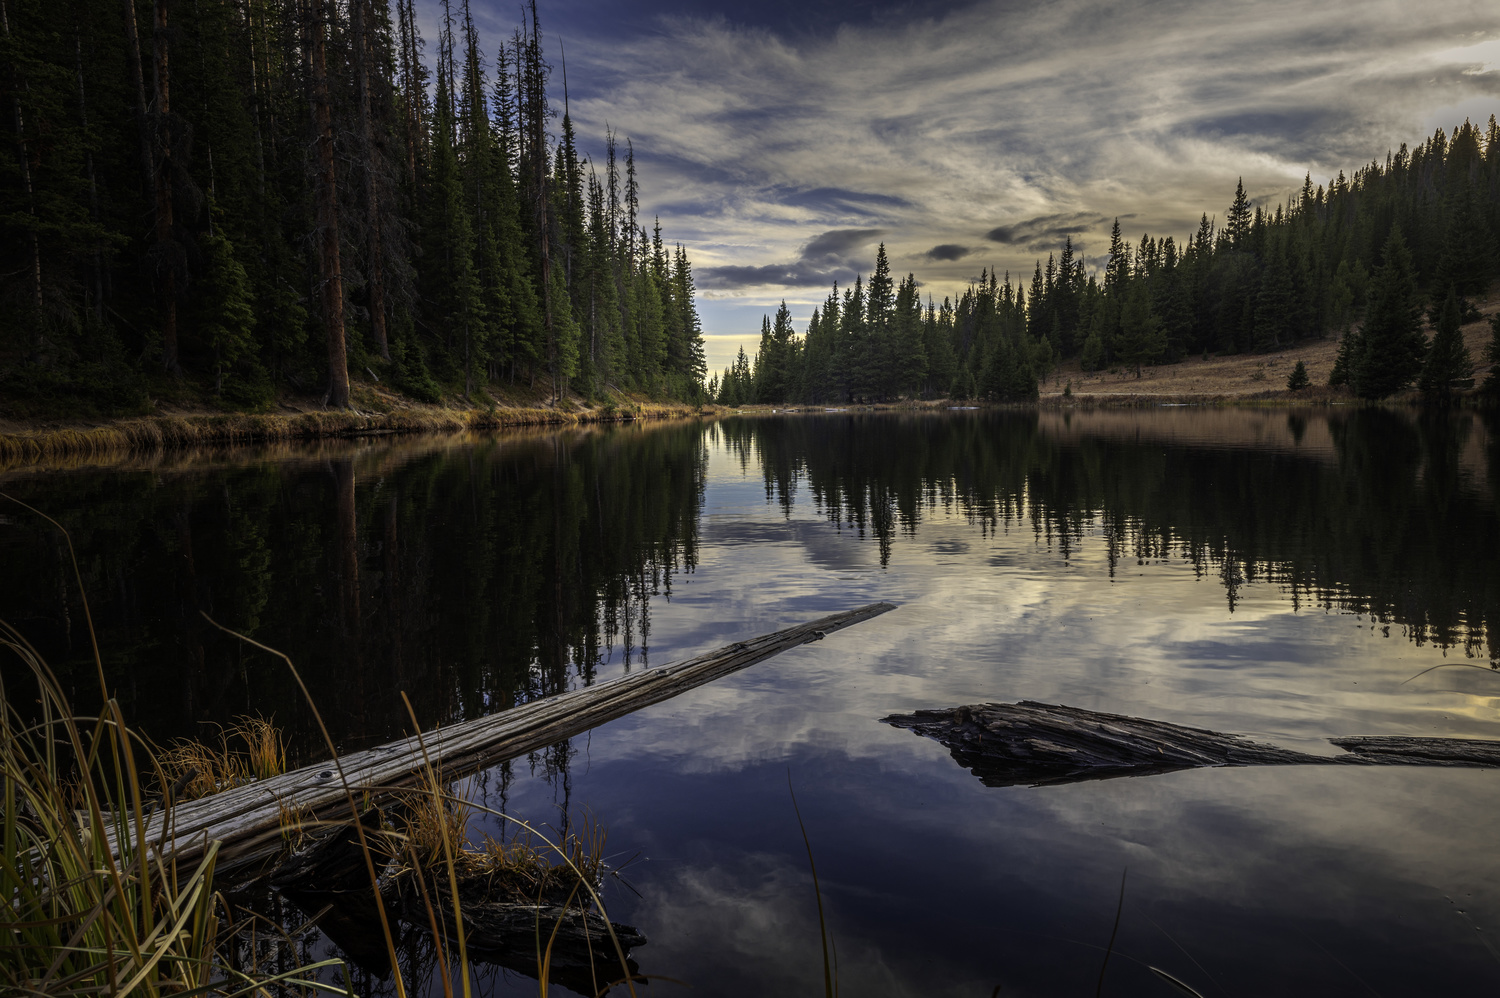 Sunset reflections on Alpine Lake by Dave Spates